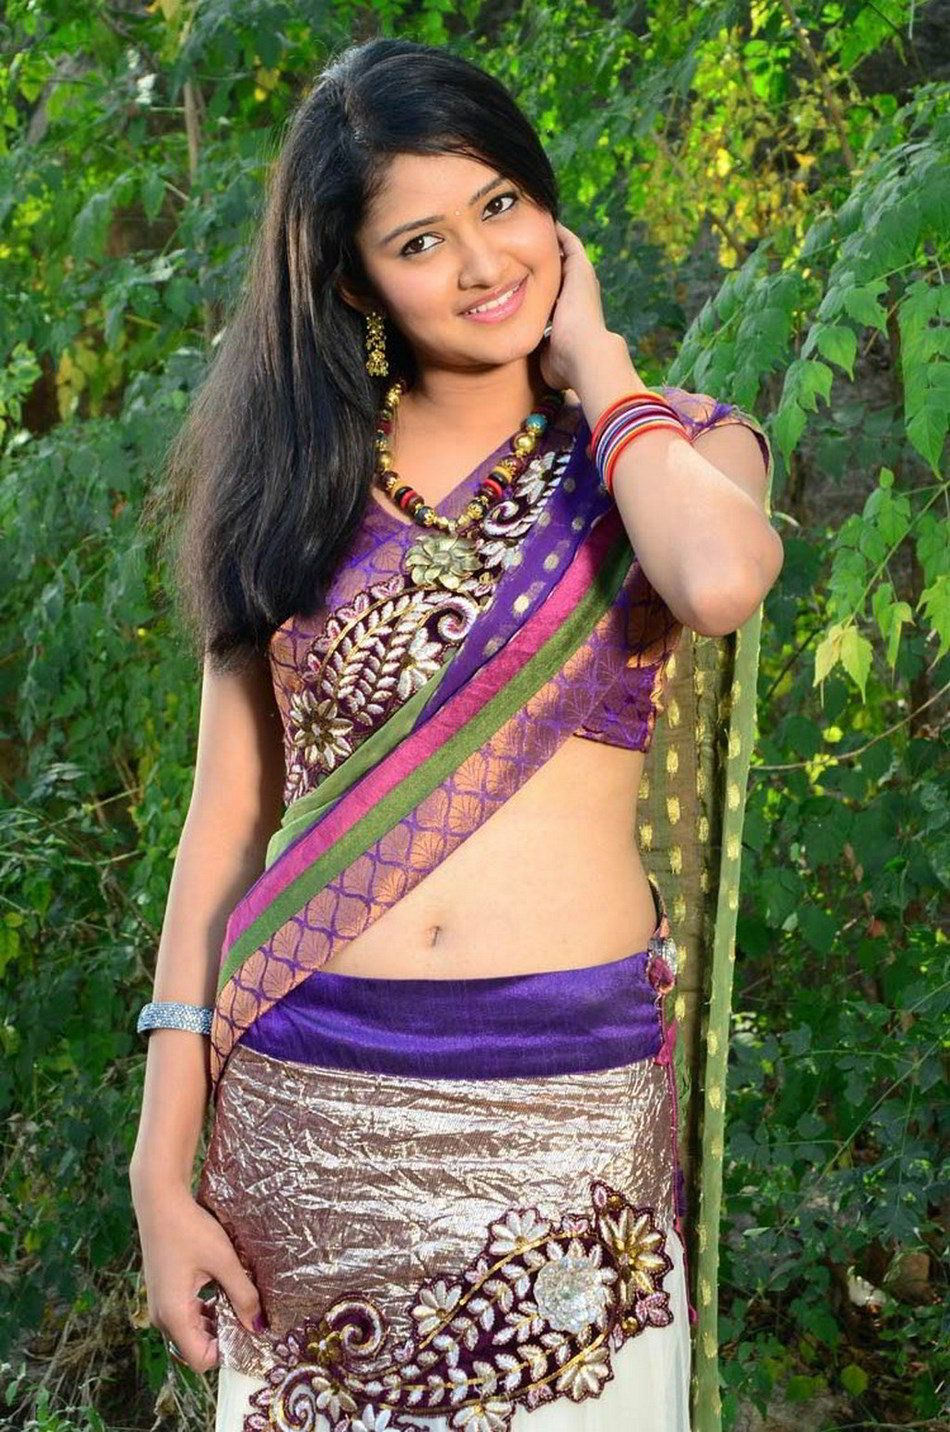 south actress hot wallpapers high resolution (3) - hd wallpapers